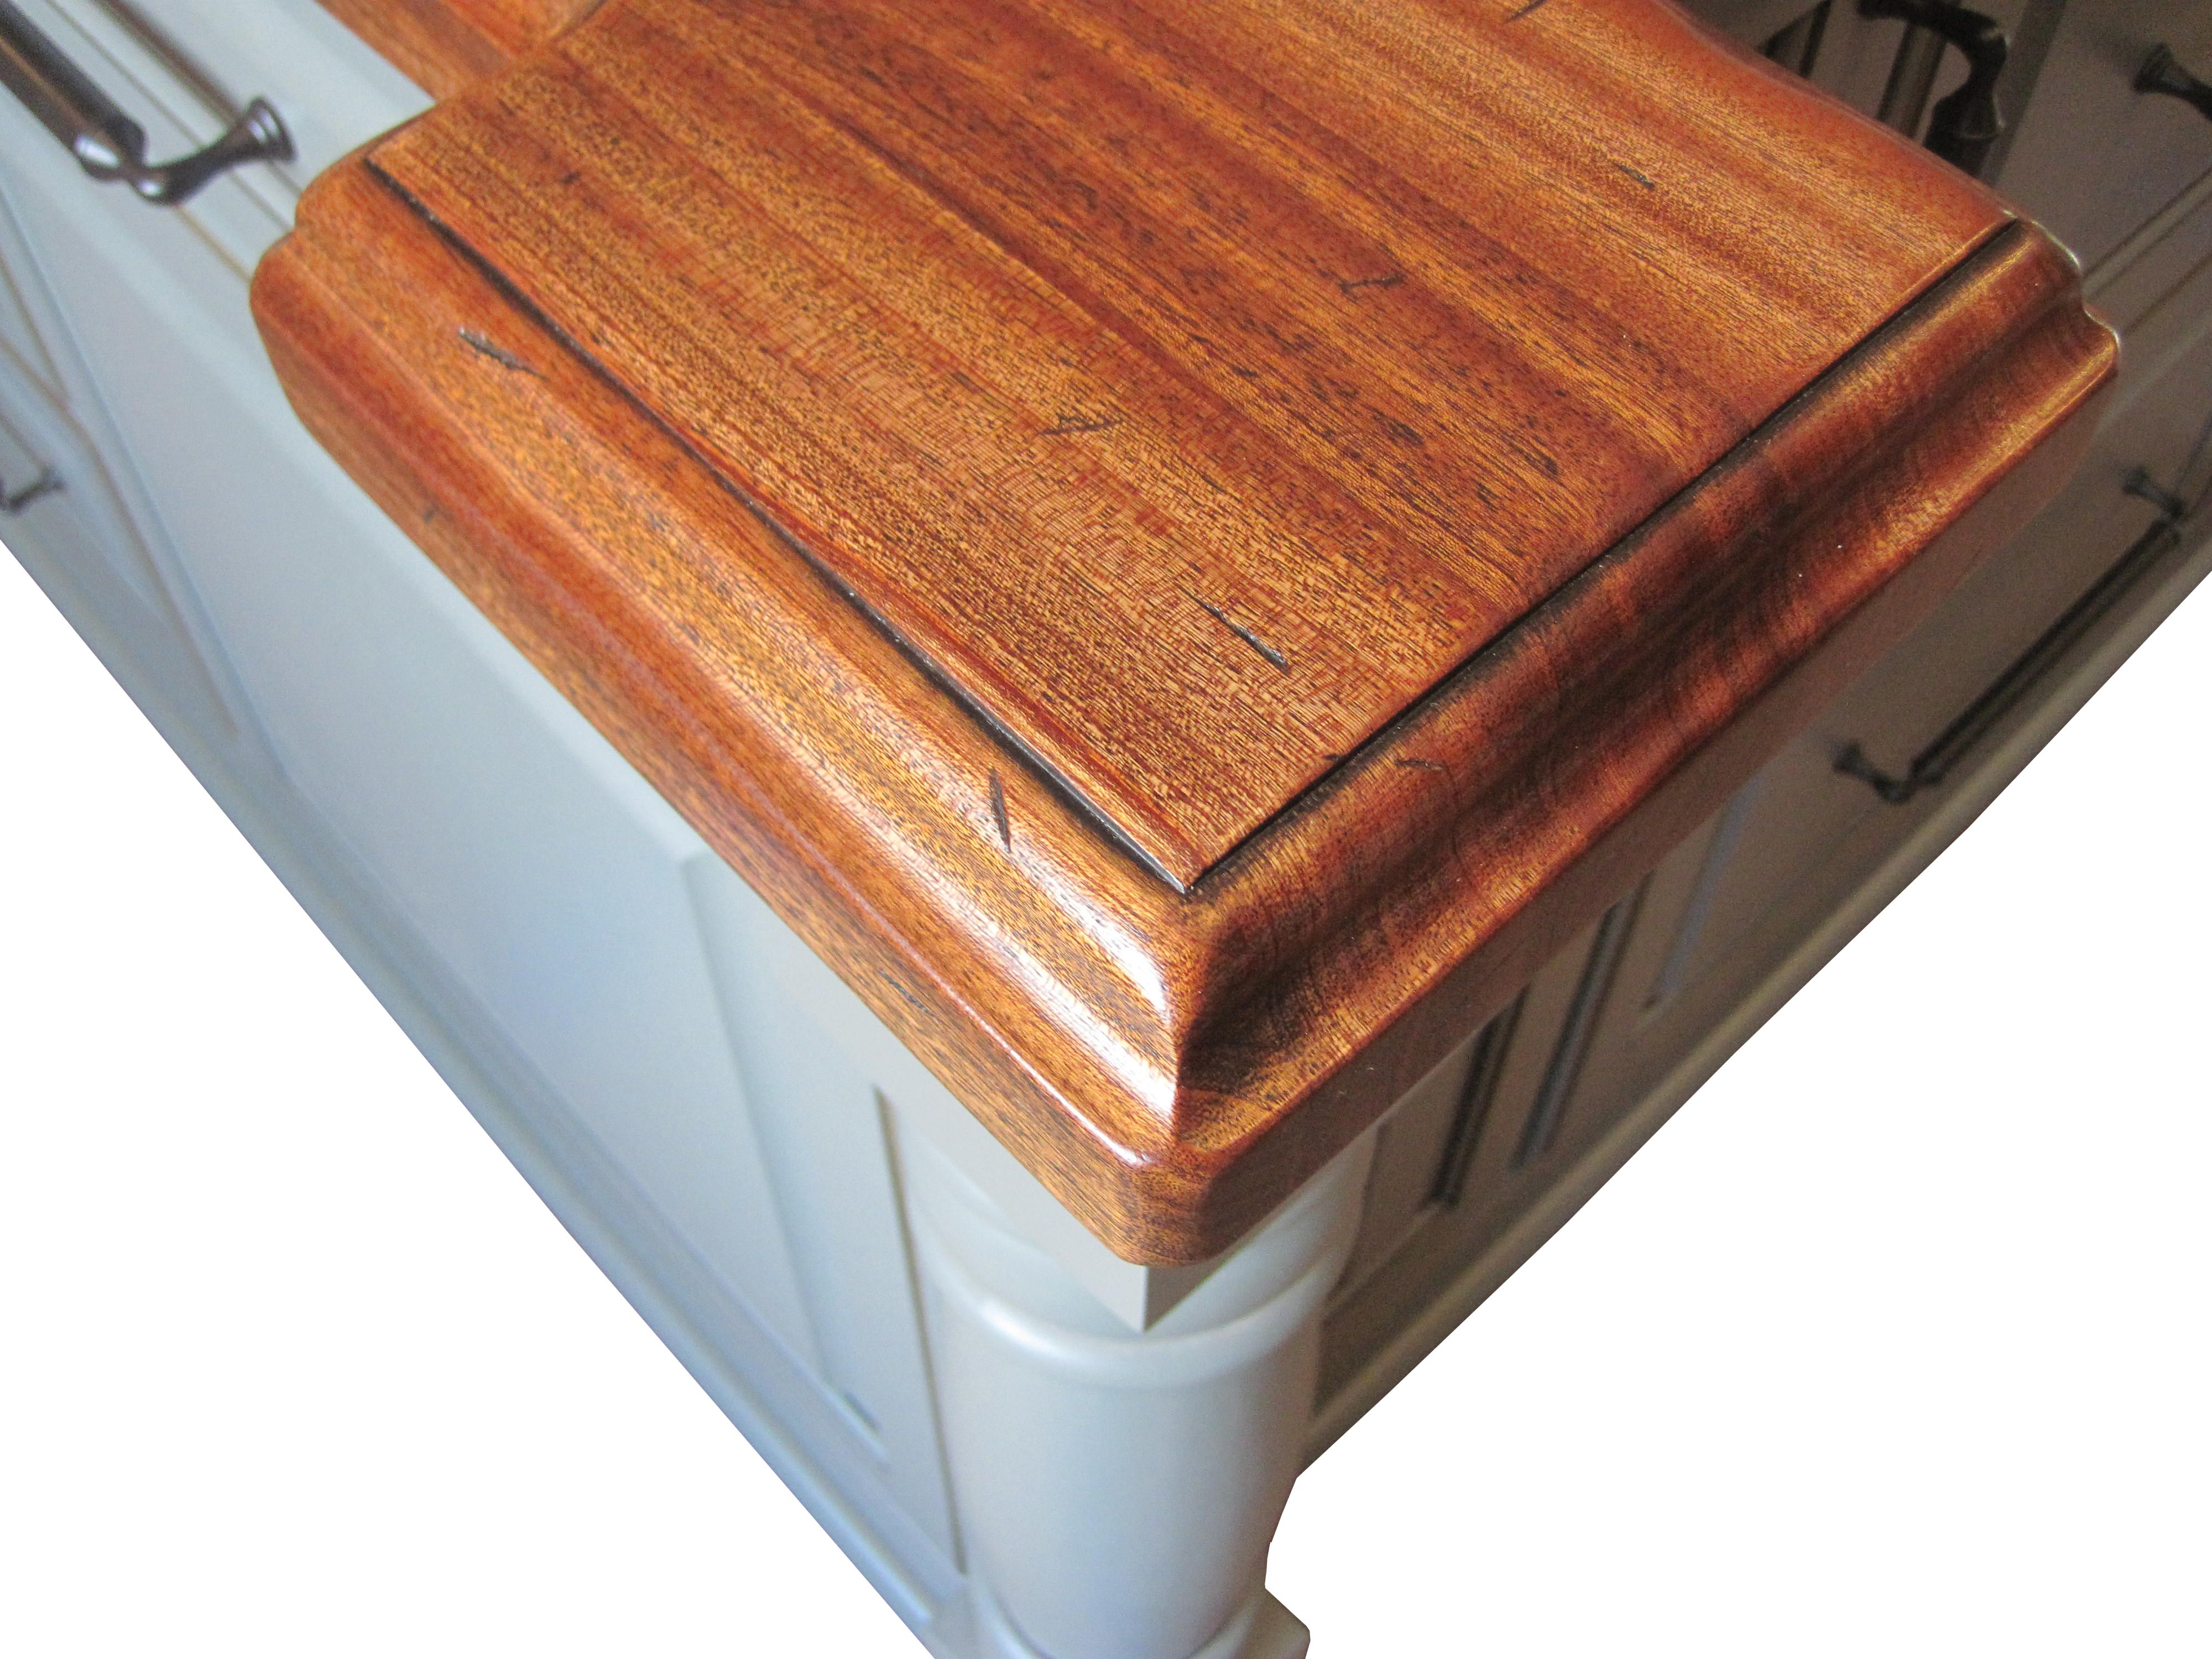 Distressed Wood Countertops Wood Countertops How To Distress